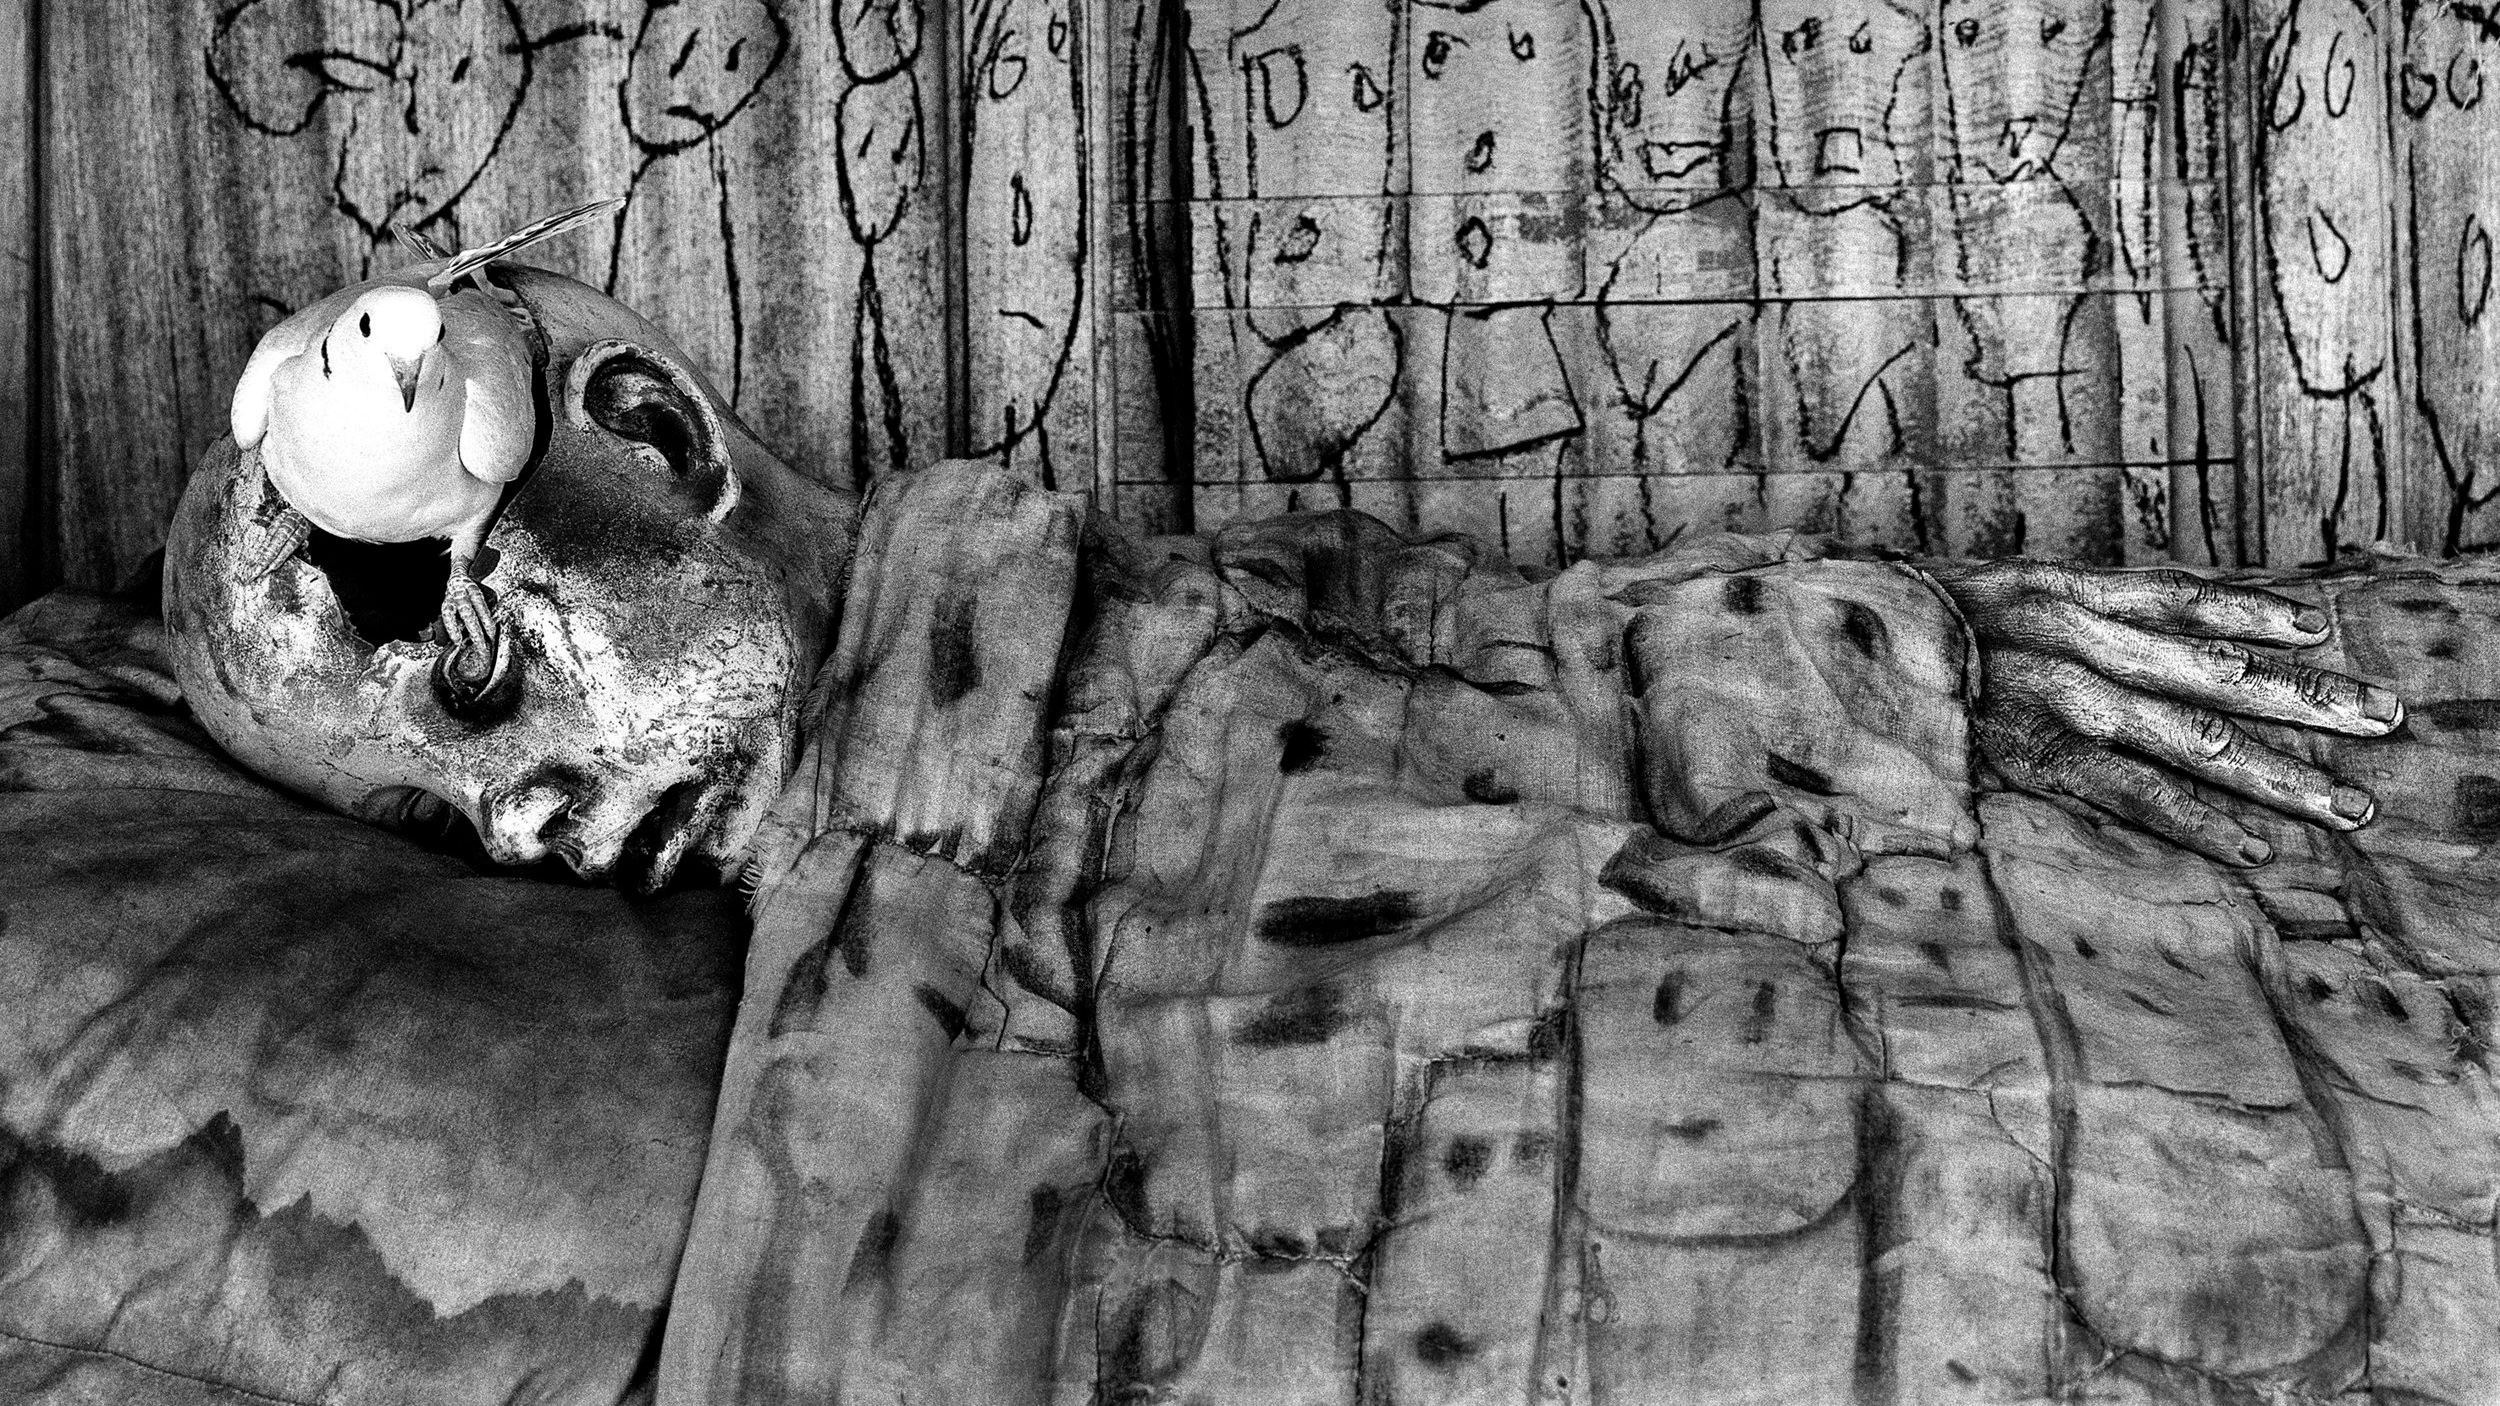 THE MANY ELEMENTS OF BALLENESQUE IN DEATHBED (2010). CREDIT: ROGER BALLEN